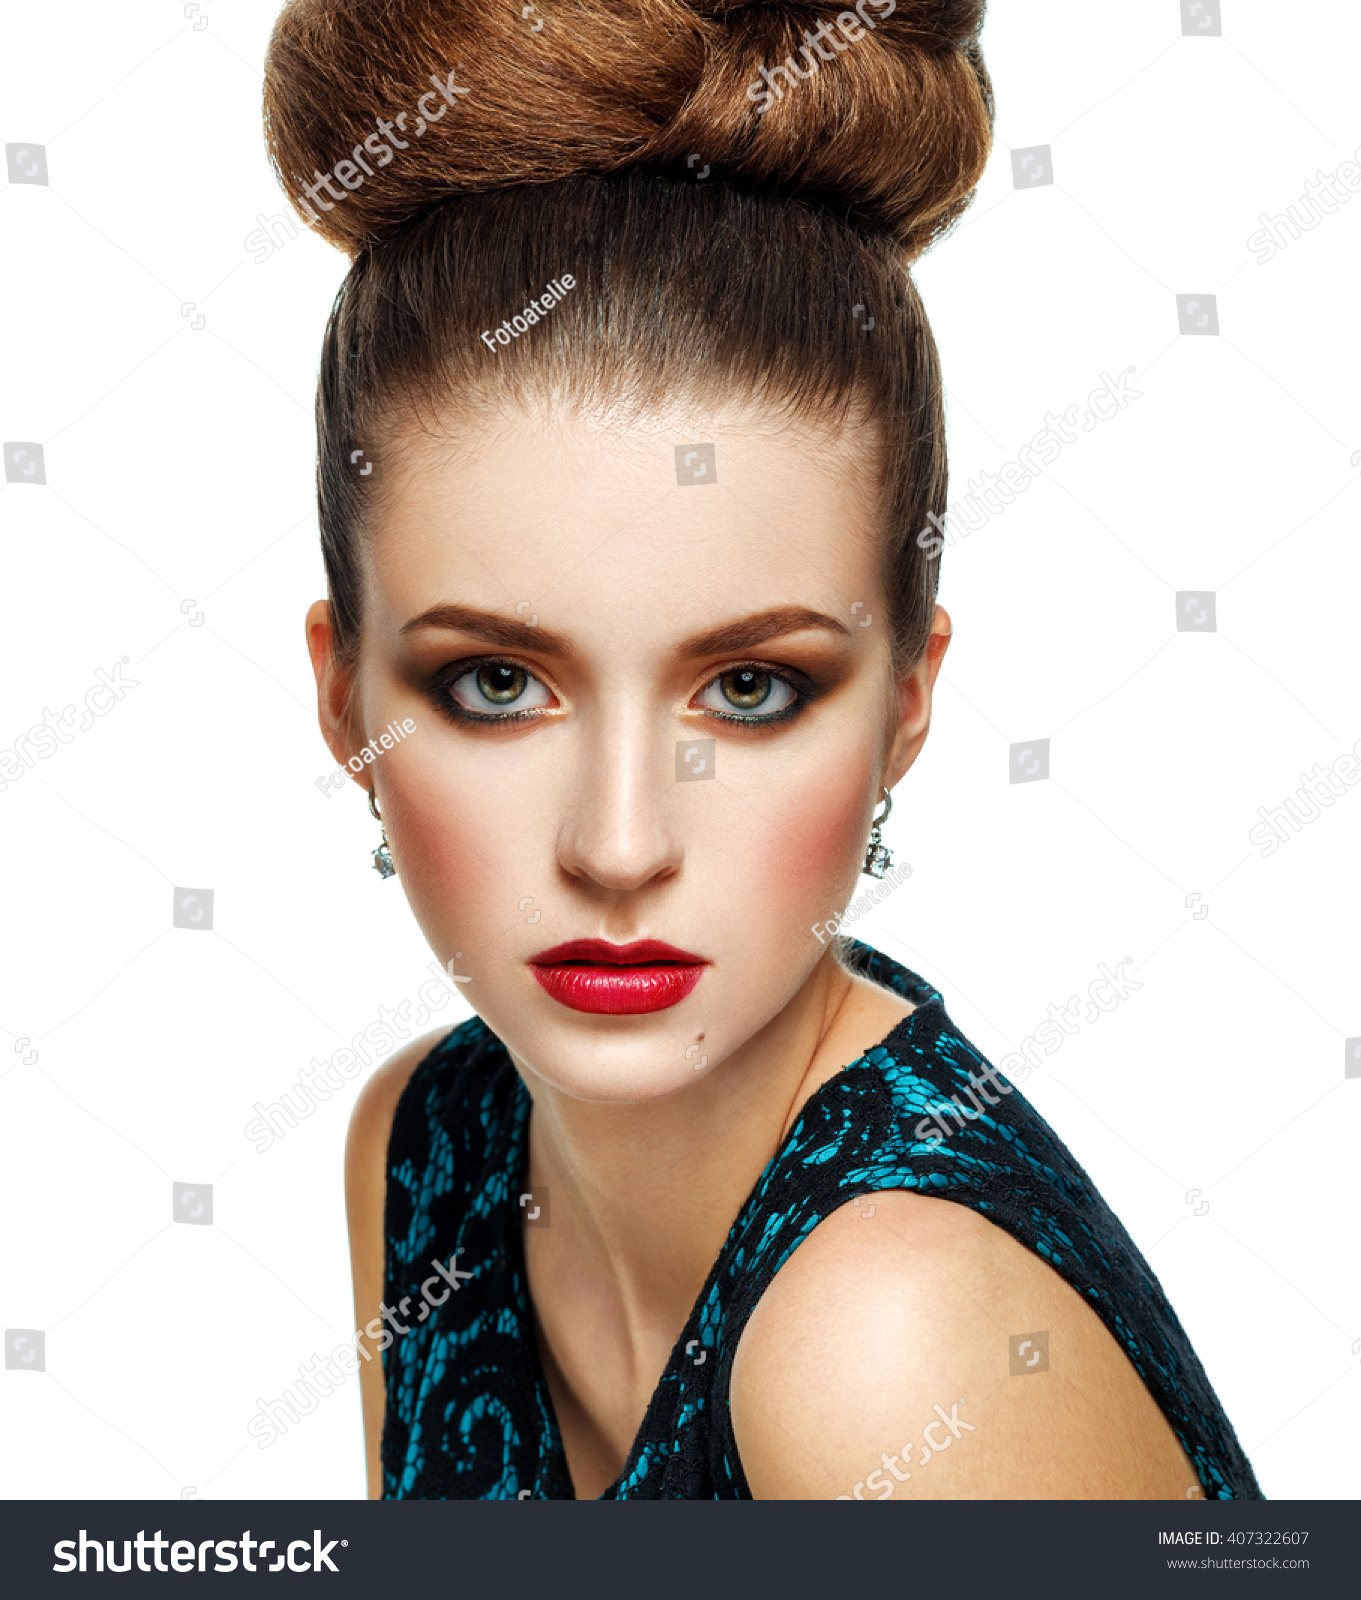 Beautiful Model Girl With Updo Hairstyle And Stylish